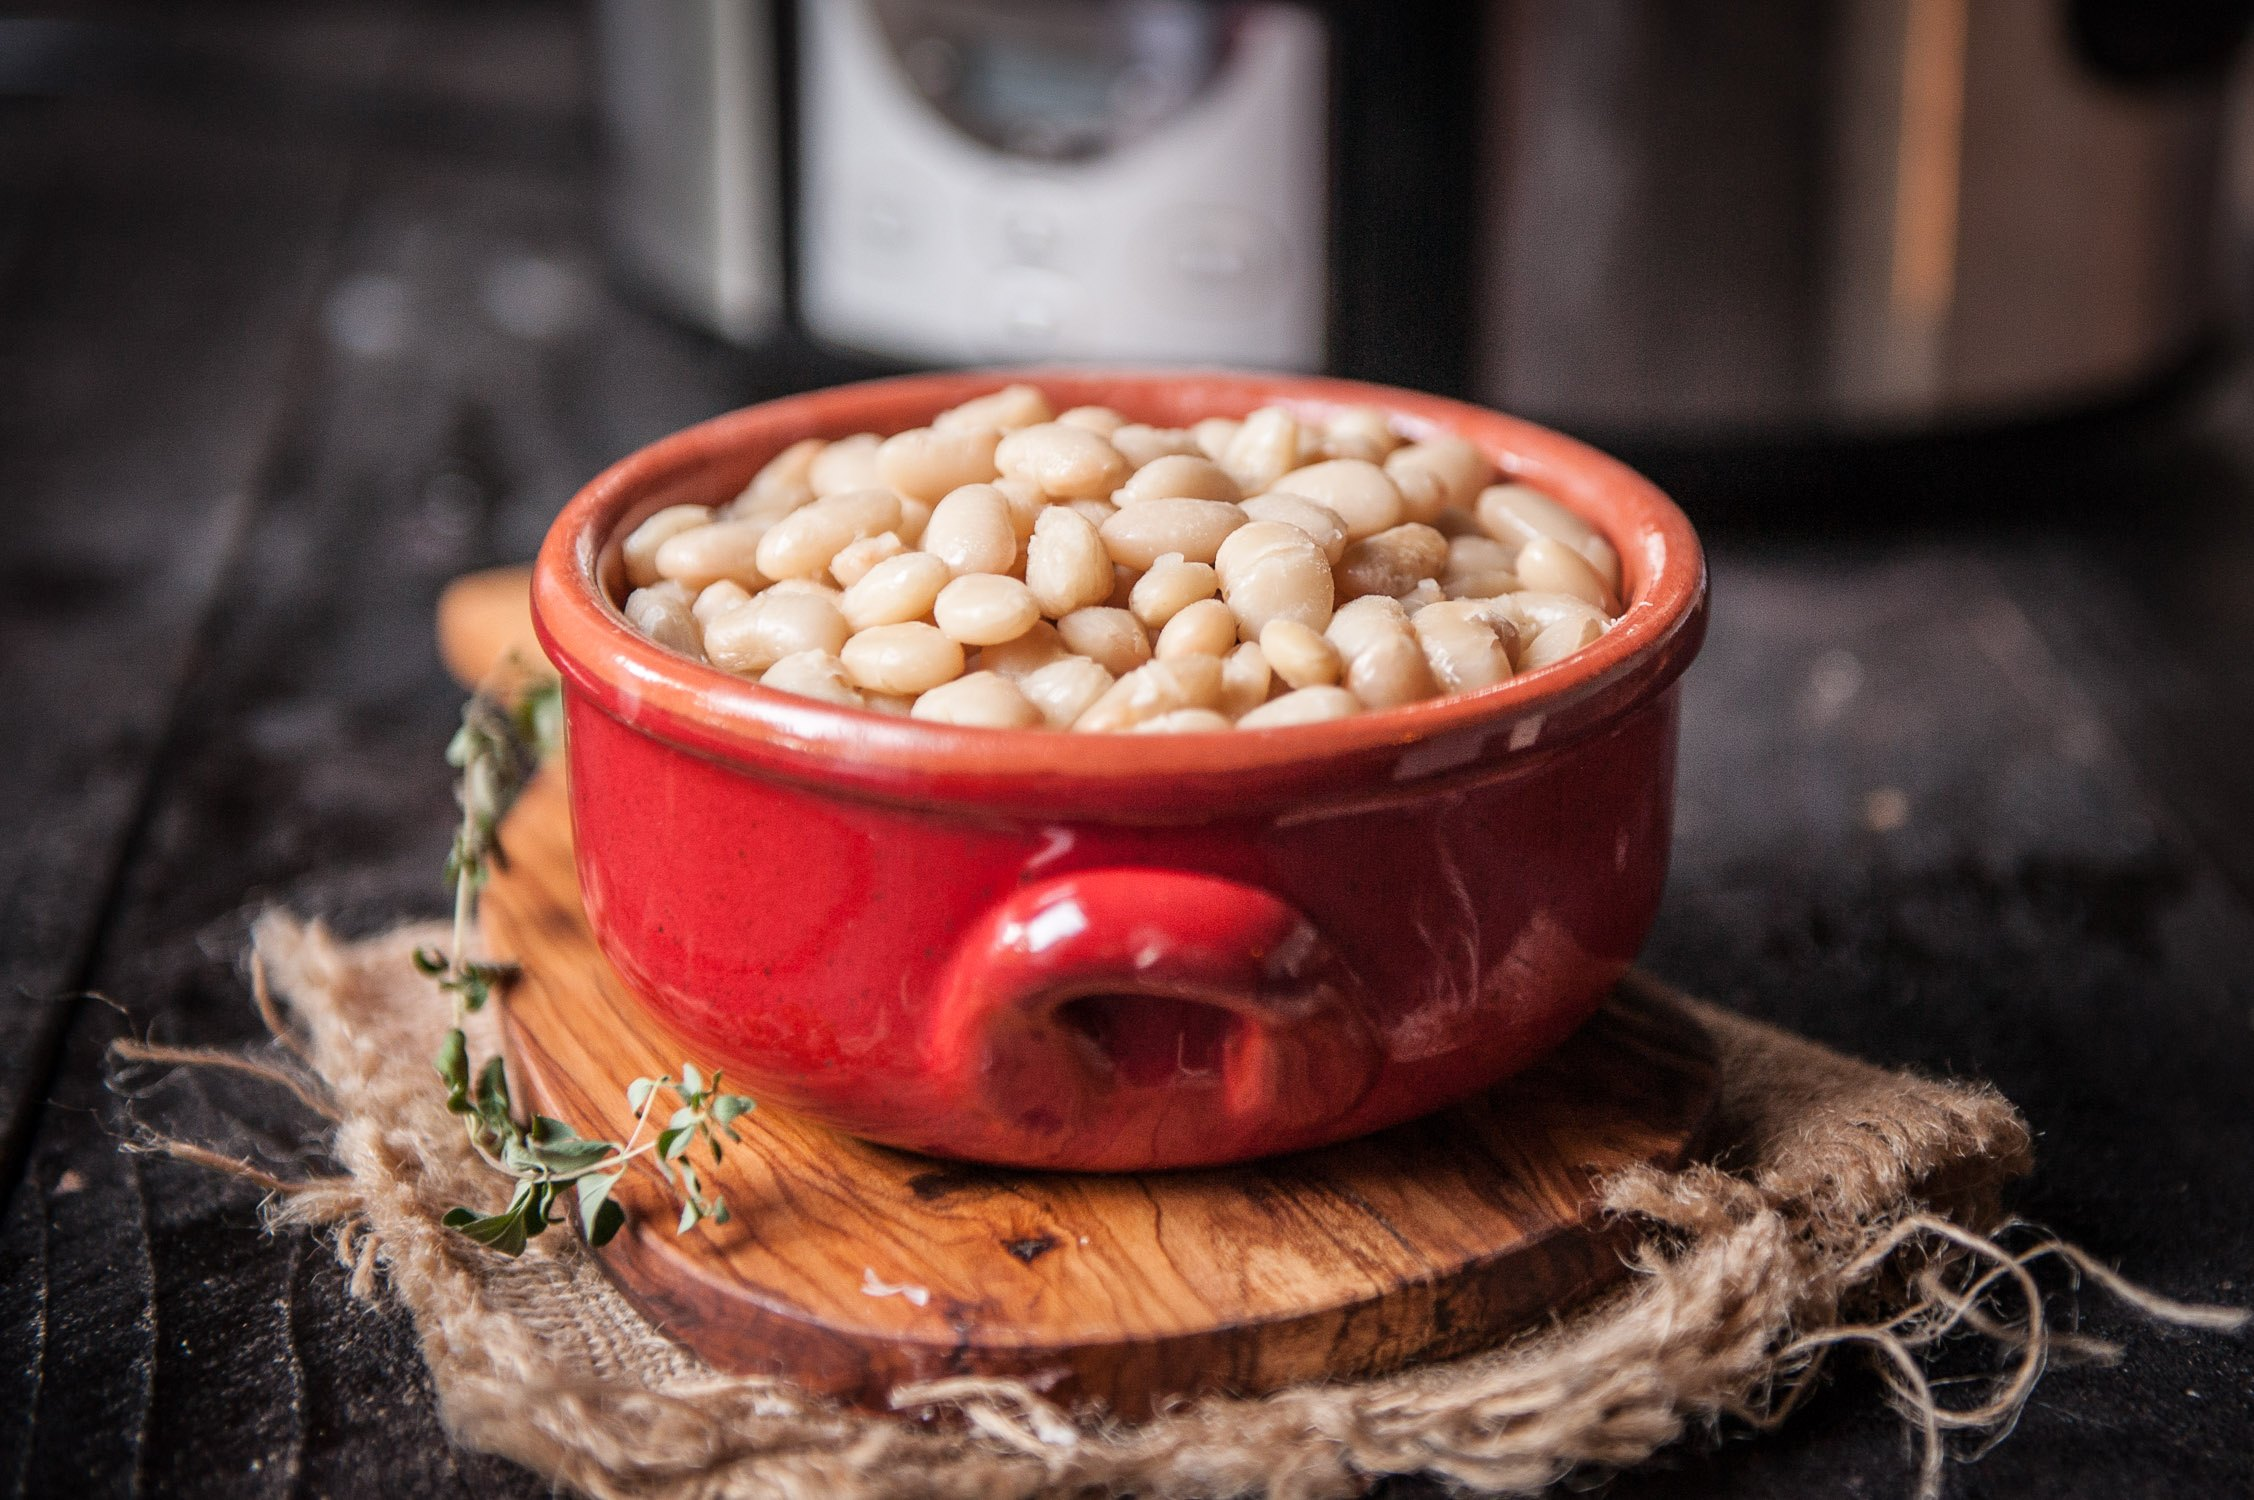 Ehow how to discover the expert in you - How To Cook Dried Beans In A Slow Cooker